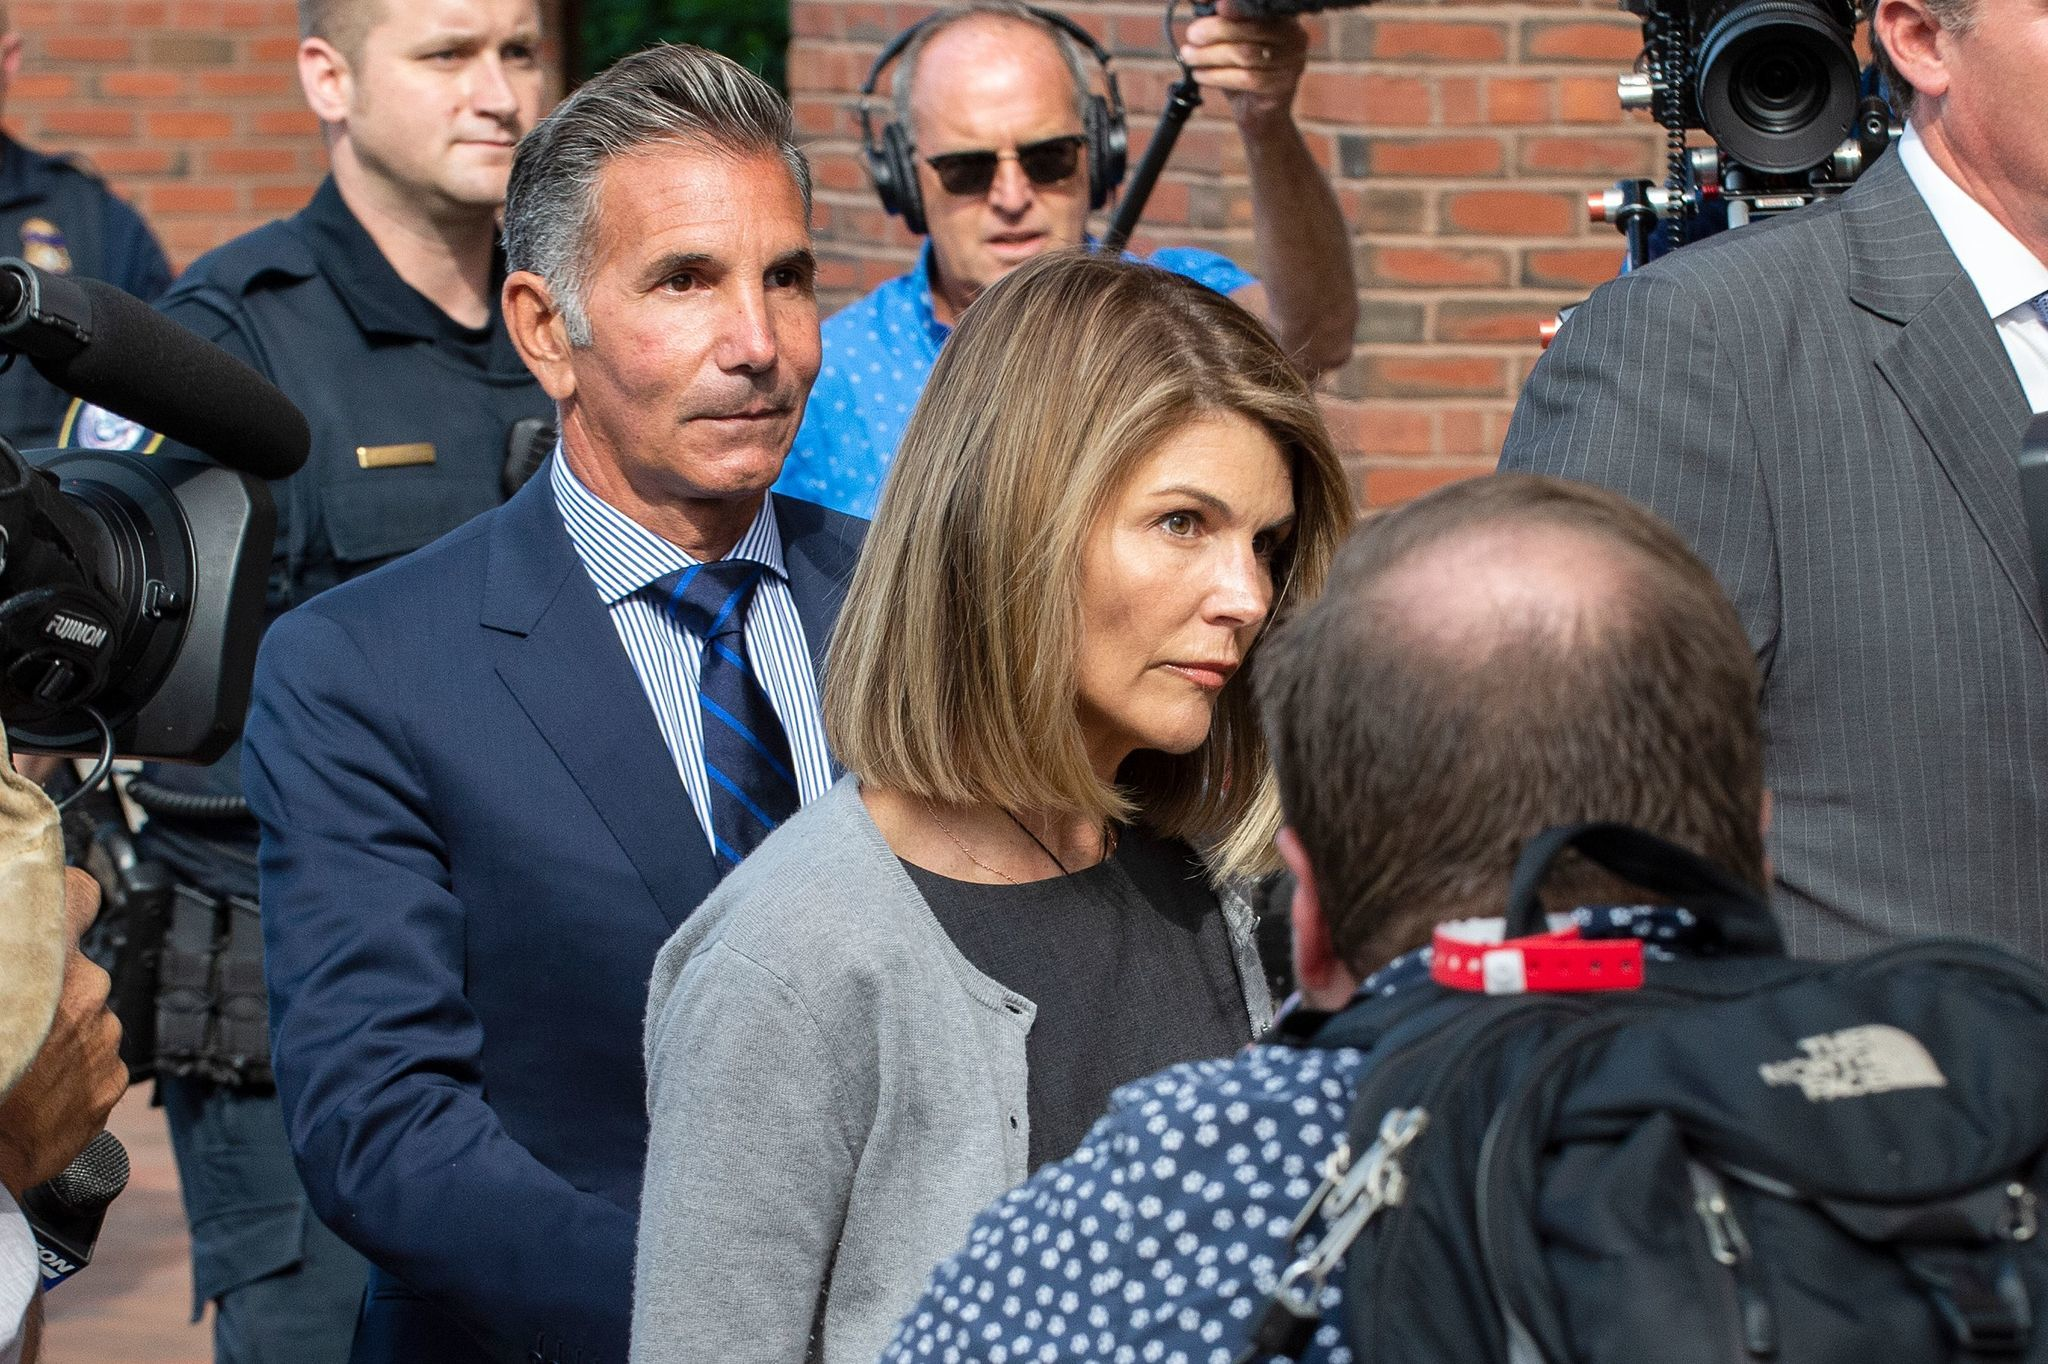 Lori Loughlin urges judge to drop college bribery charges over 'extraordinary' misconduct by prosecutors